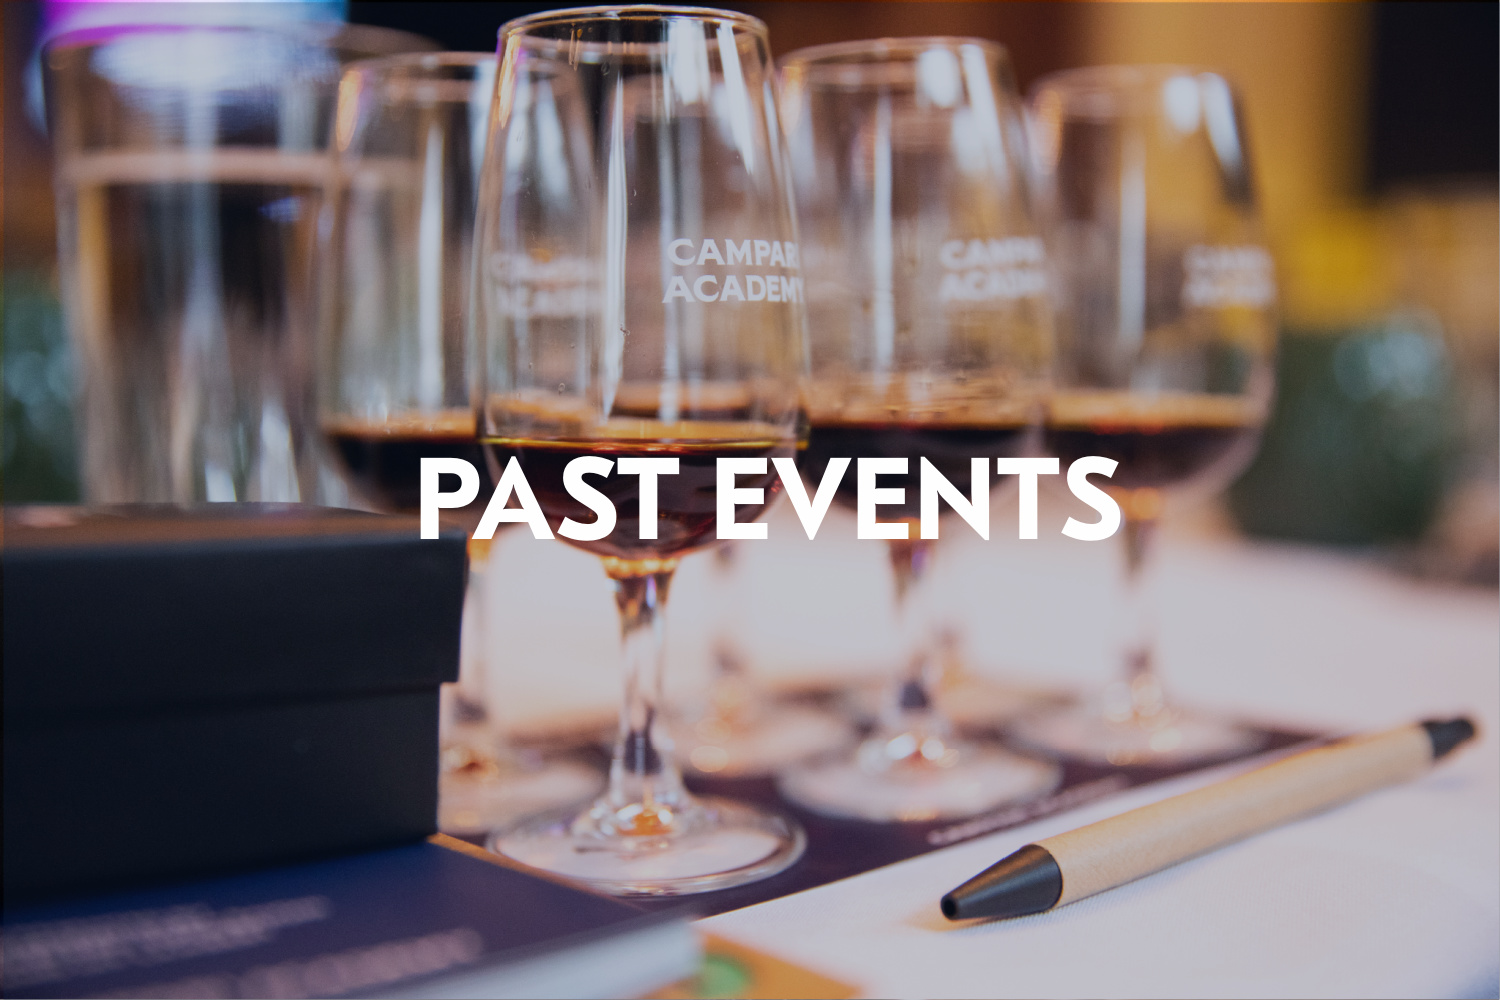 PAST EVENTS (1)